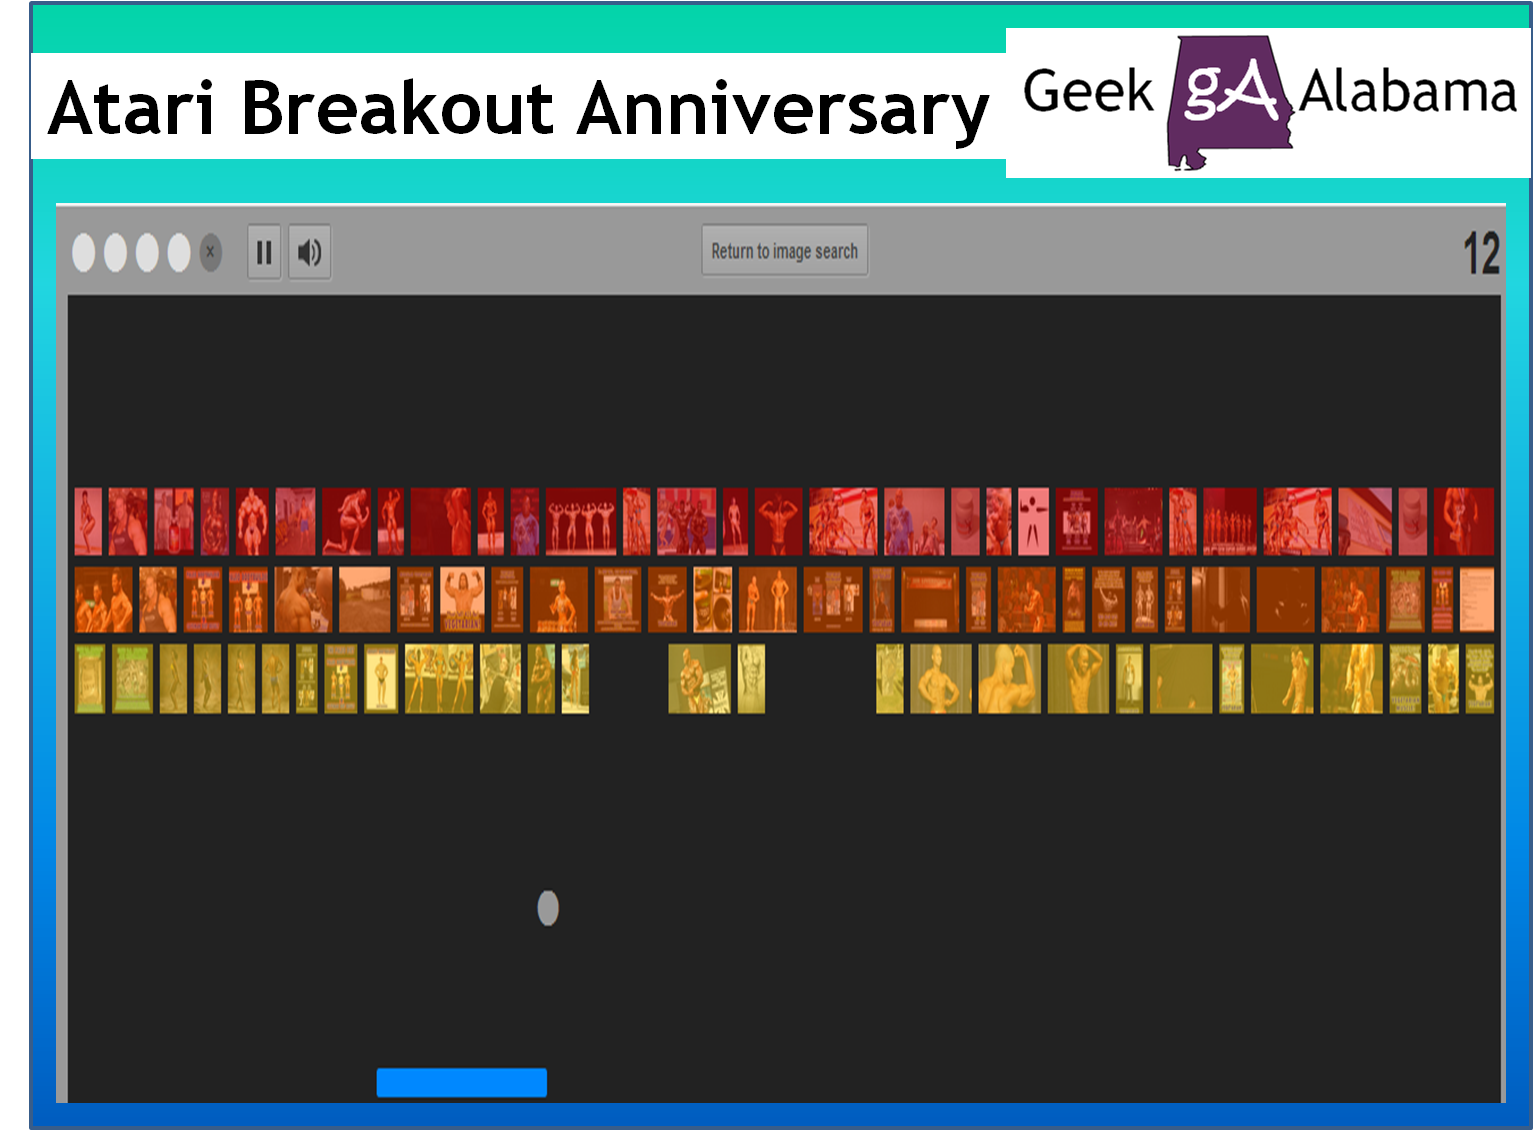 Miss Universe Play The Atari Breakout Game On Google Images